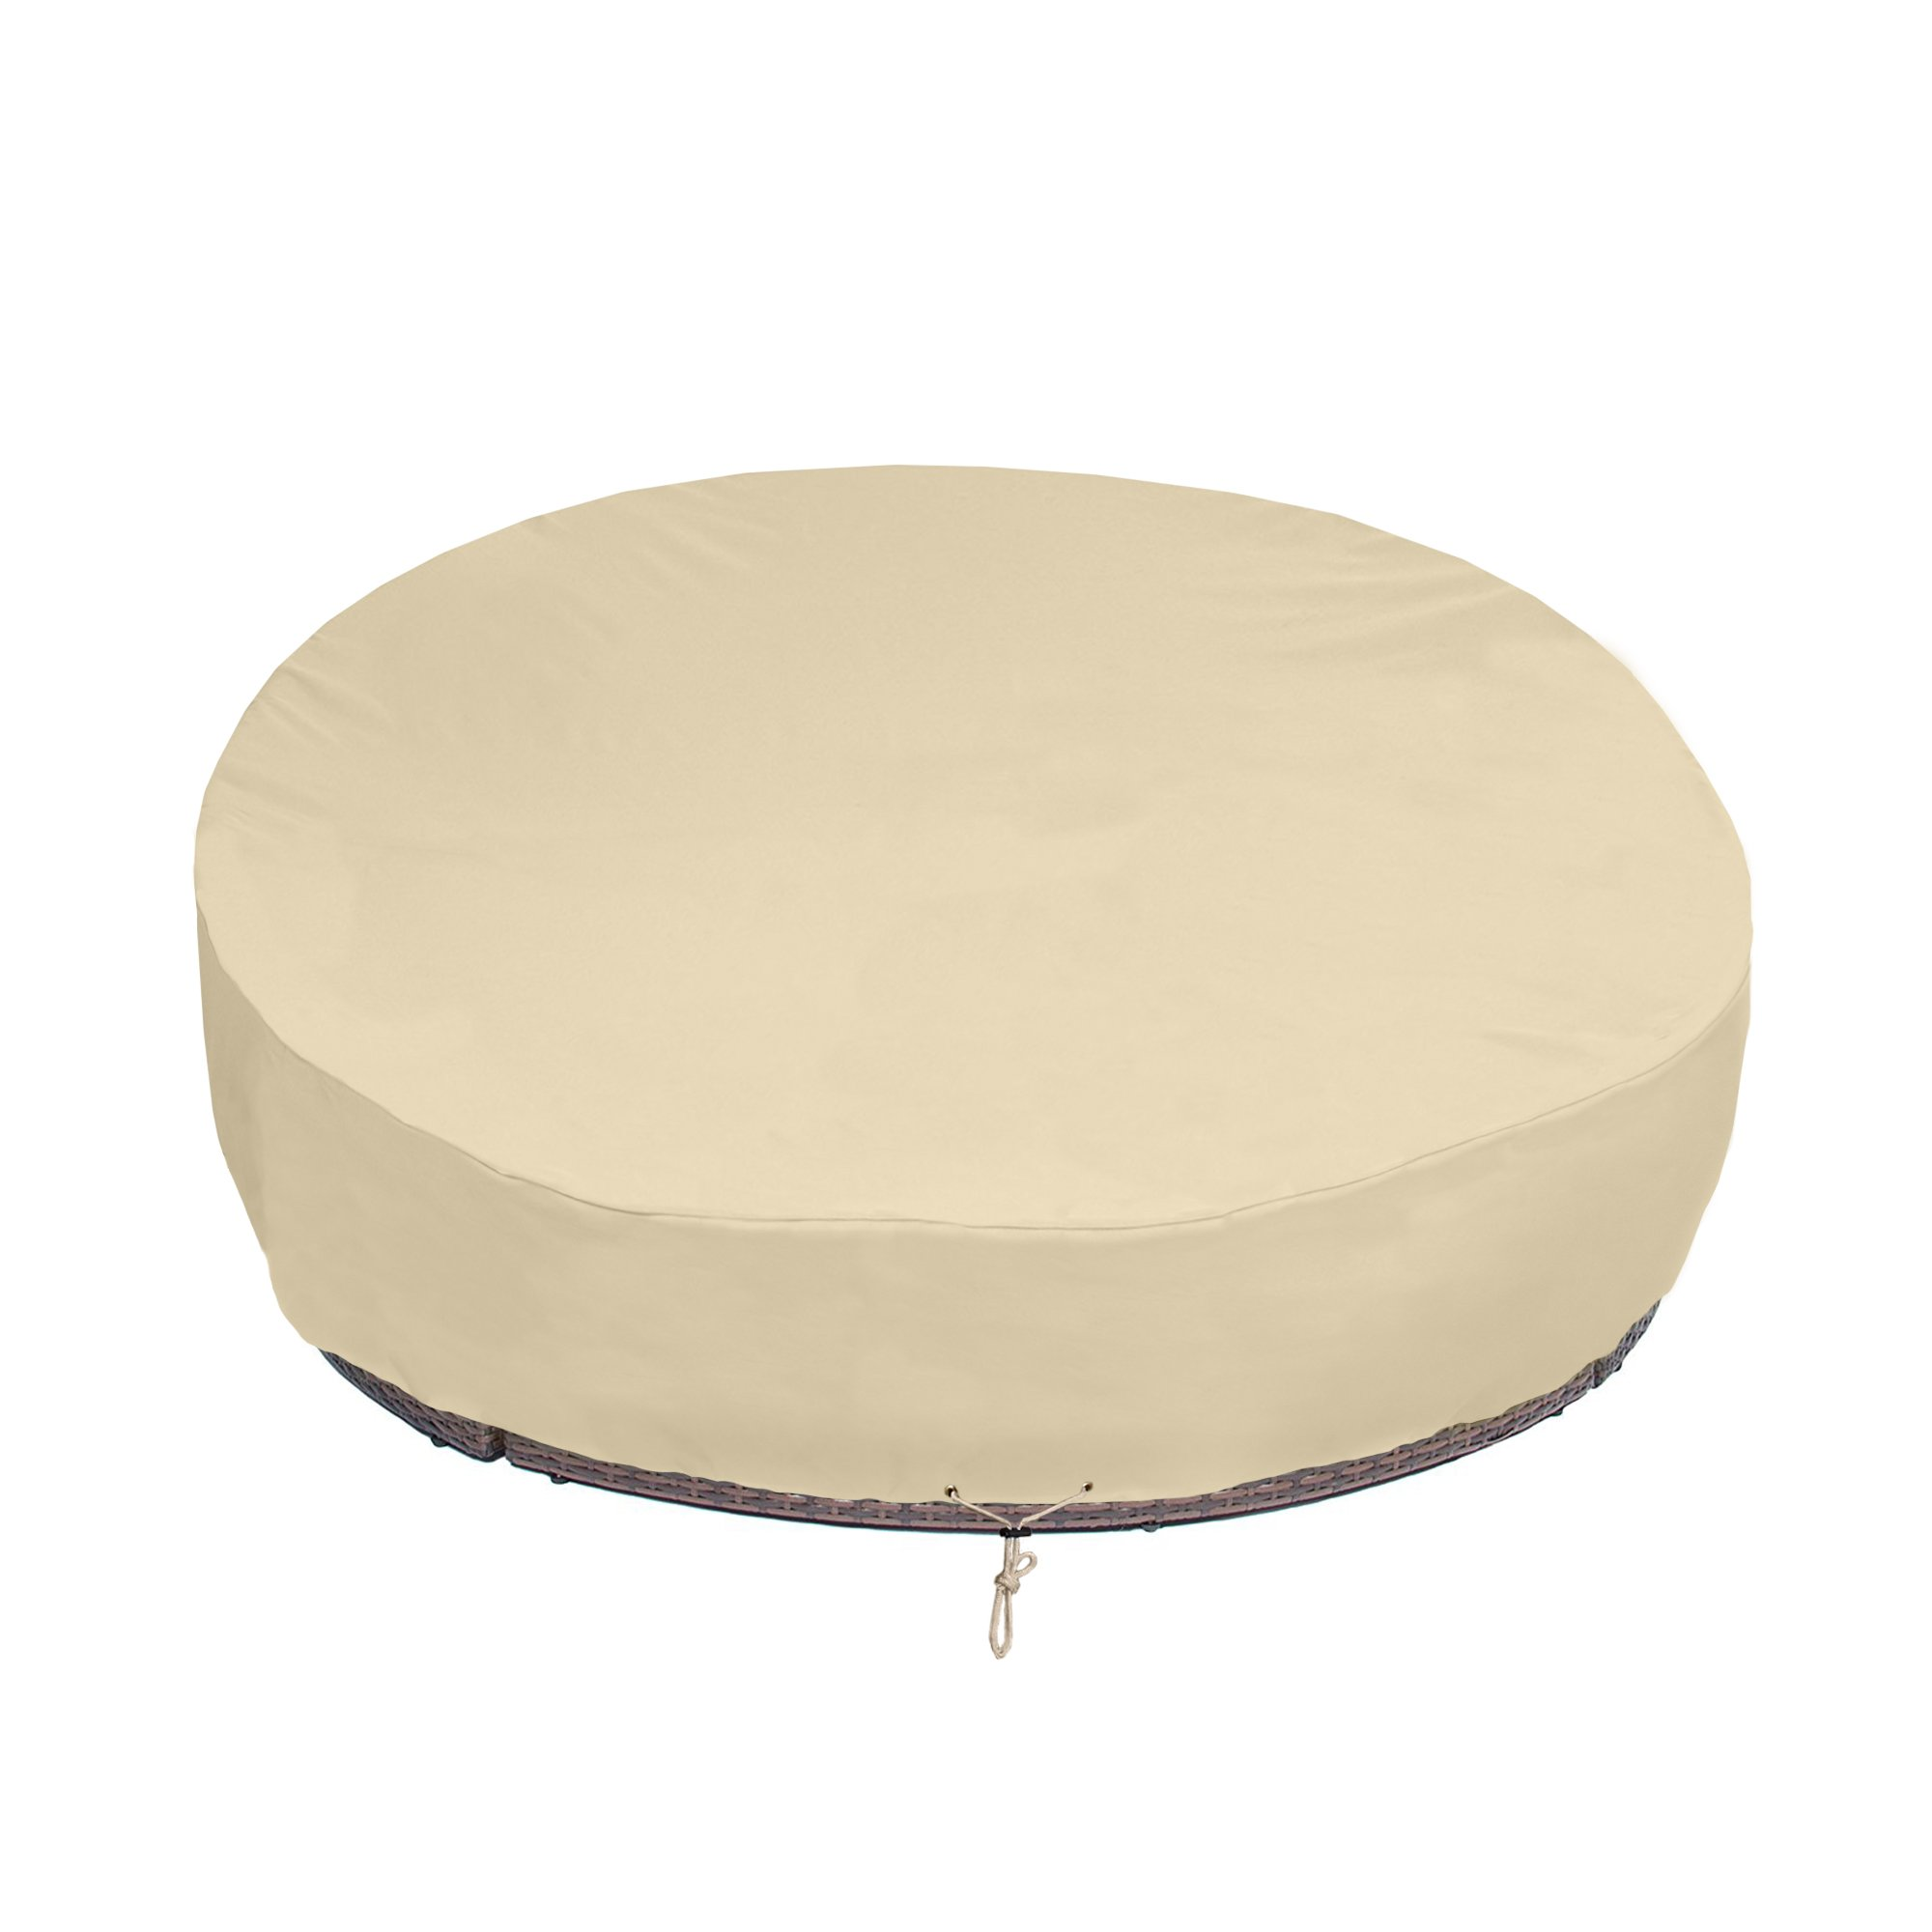 SunPatio Outdoor Daybed Cover, Heavy Duty Patio Veranda Furniture Cover 88'' L x 85'' W x 35'' H, All Weather Protection, Beige